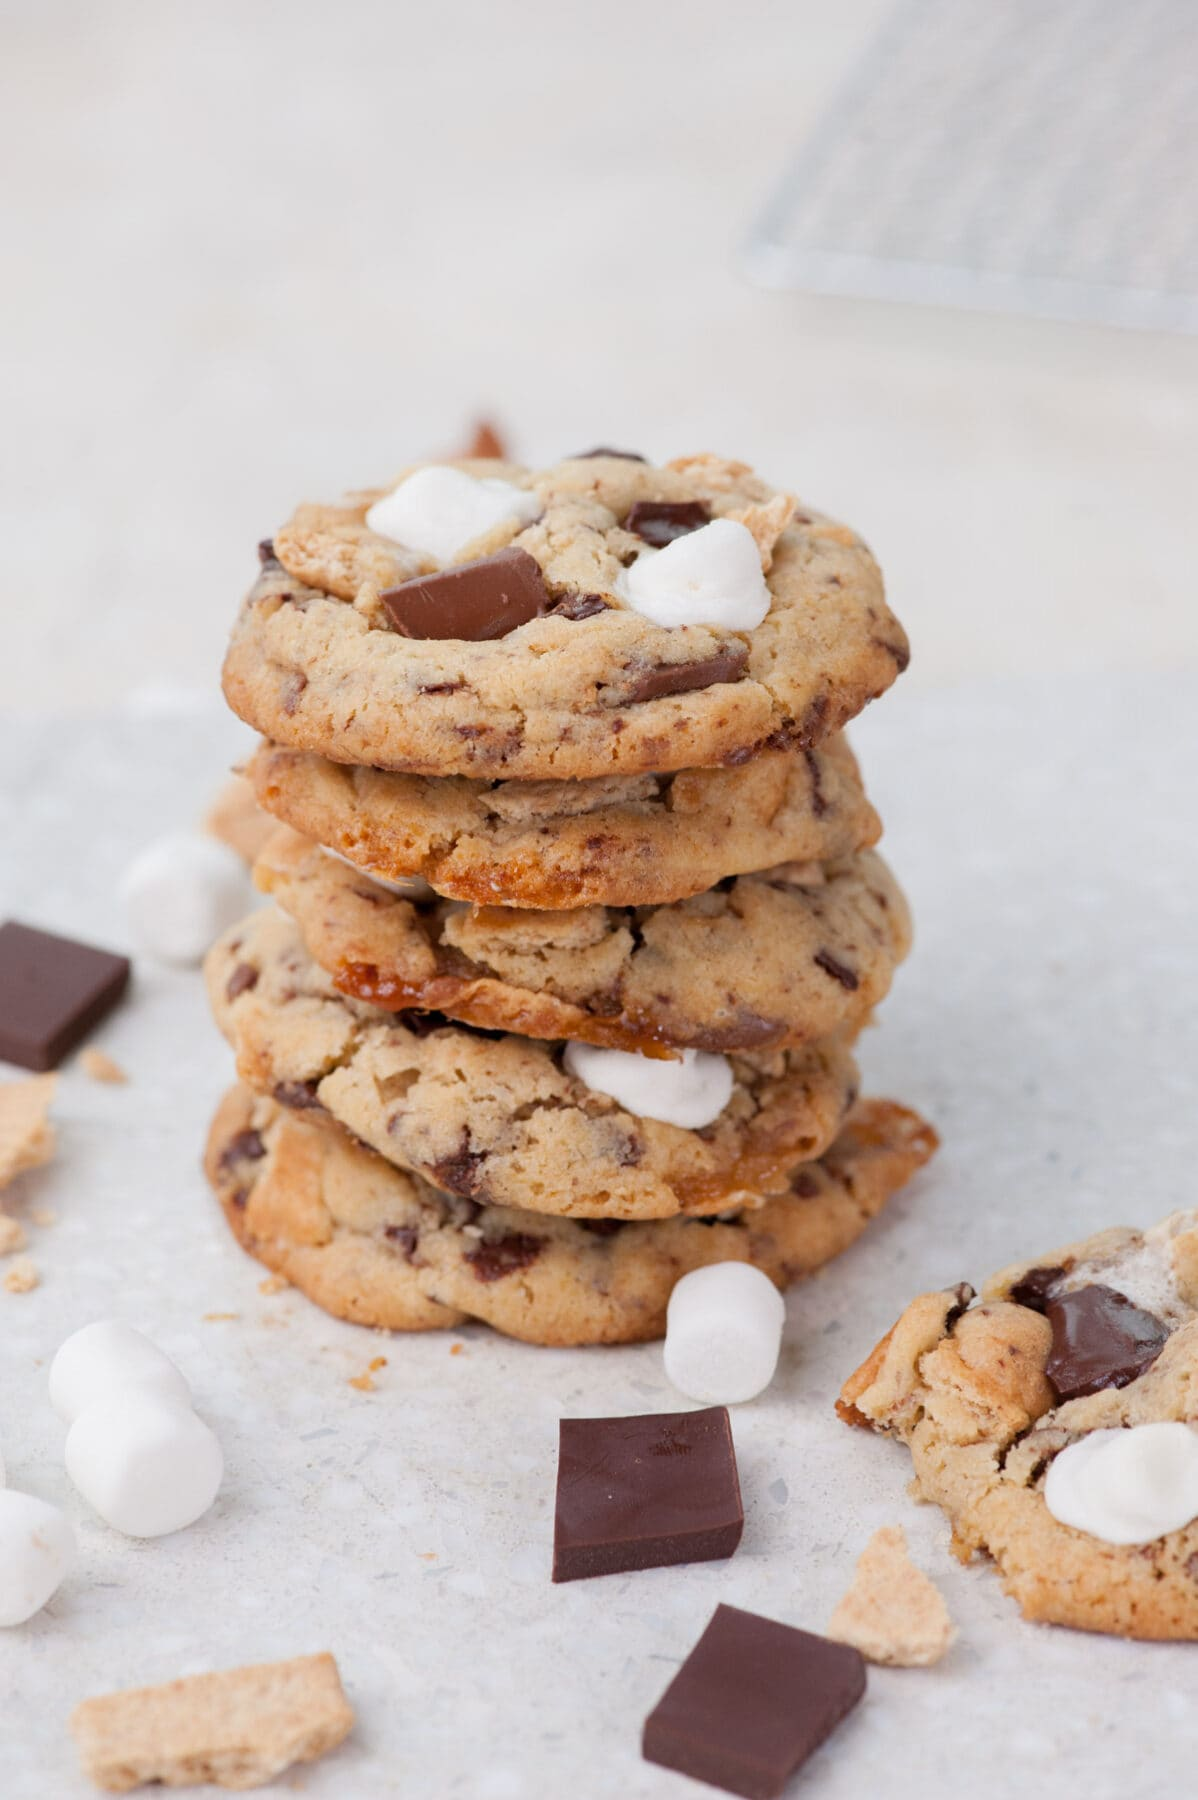 A stack of s'mores cookies on a grey background. Marshmallows and chocolate scattered around.